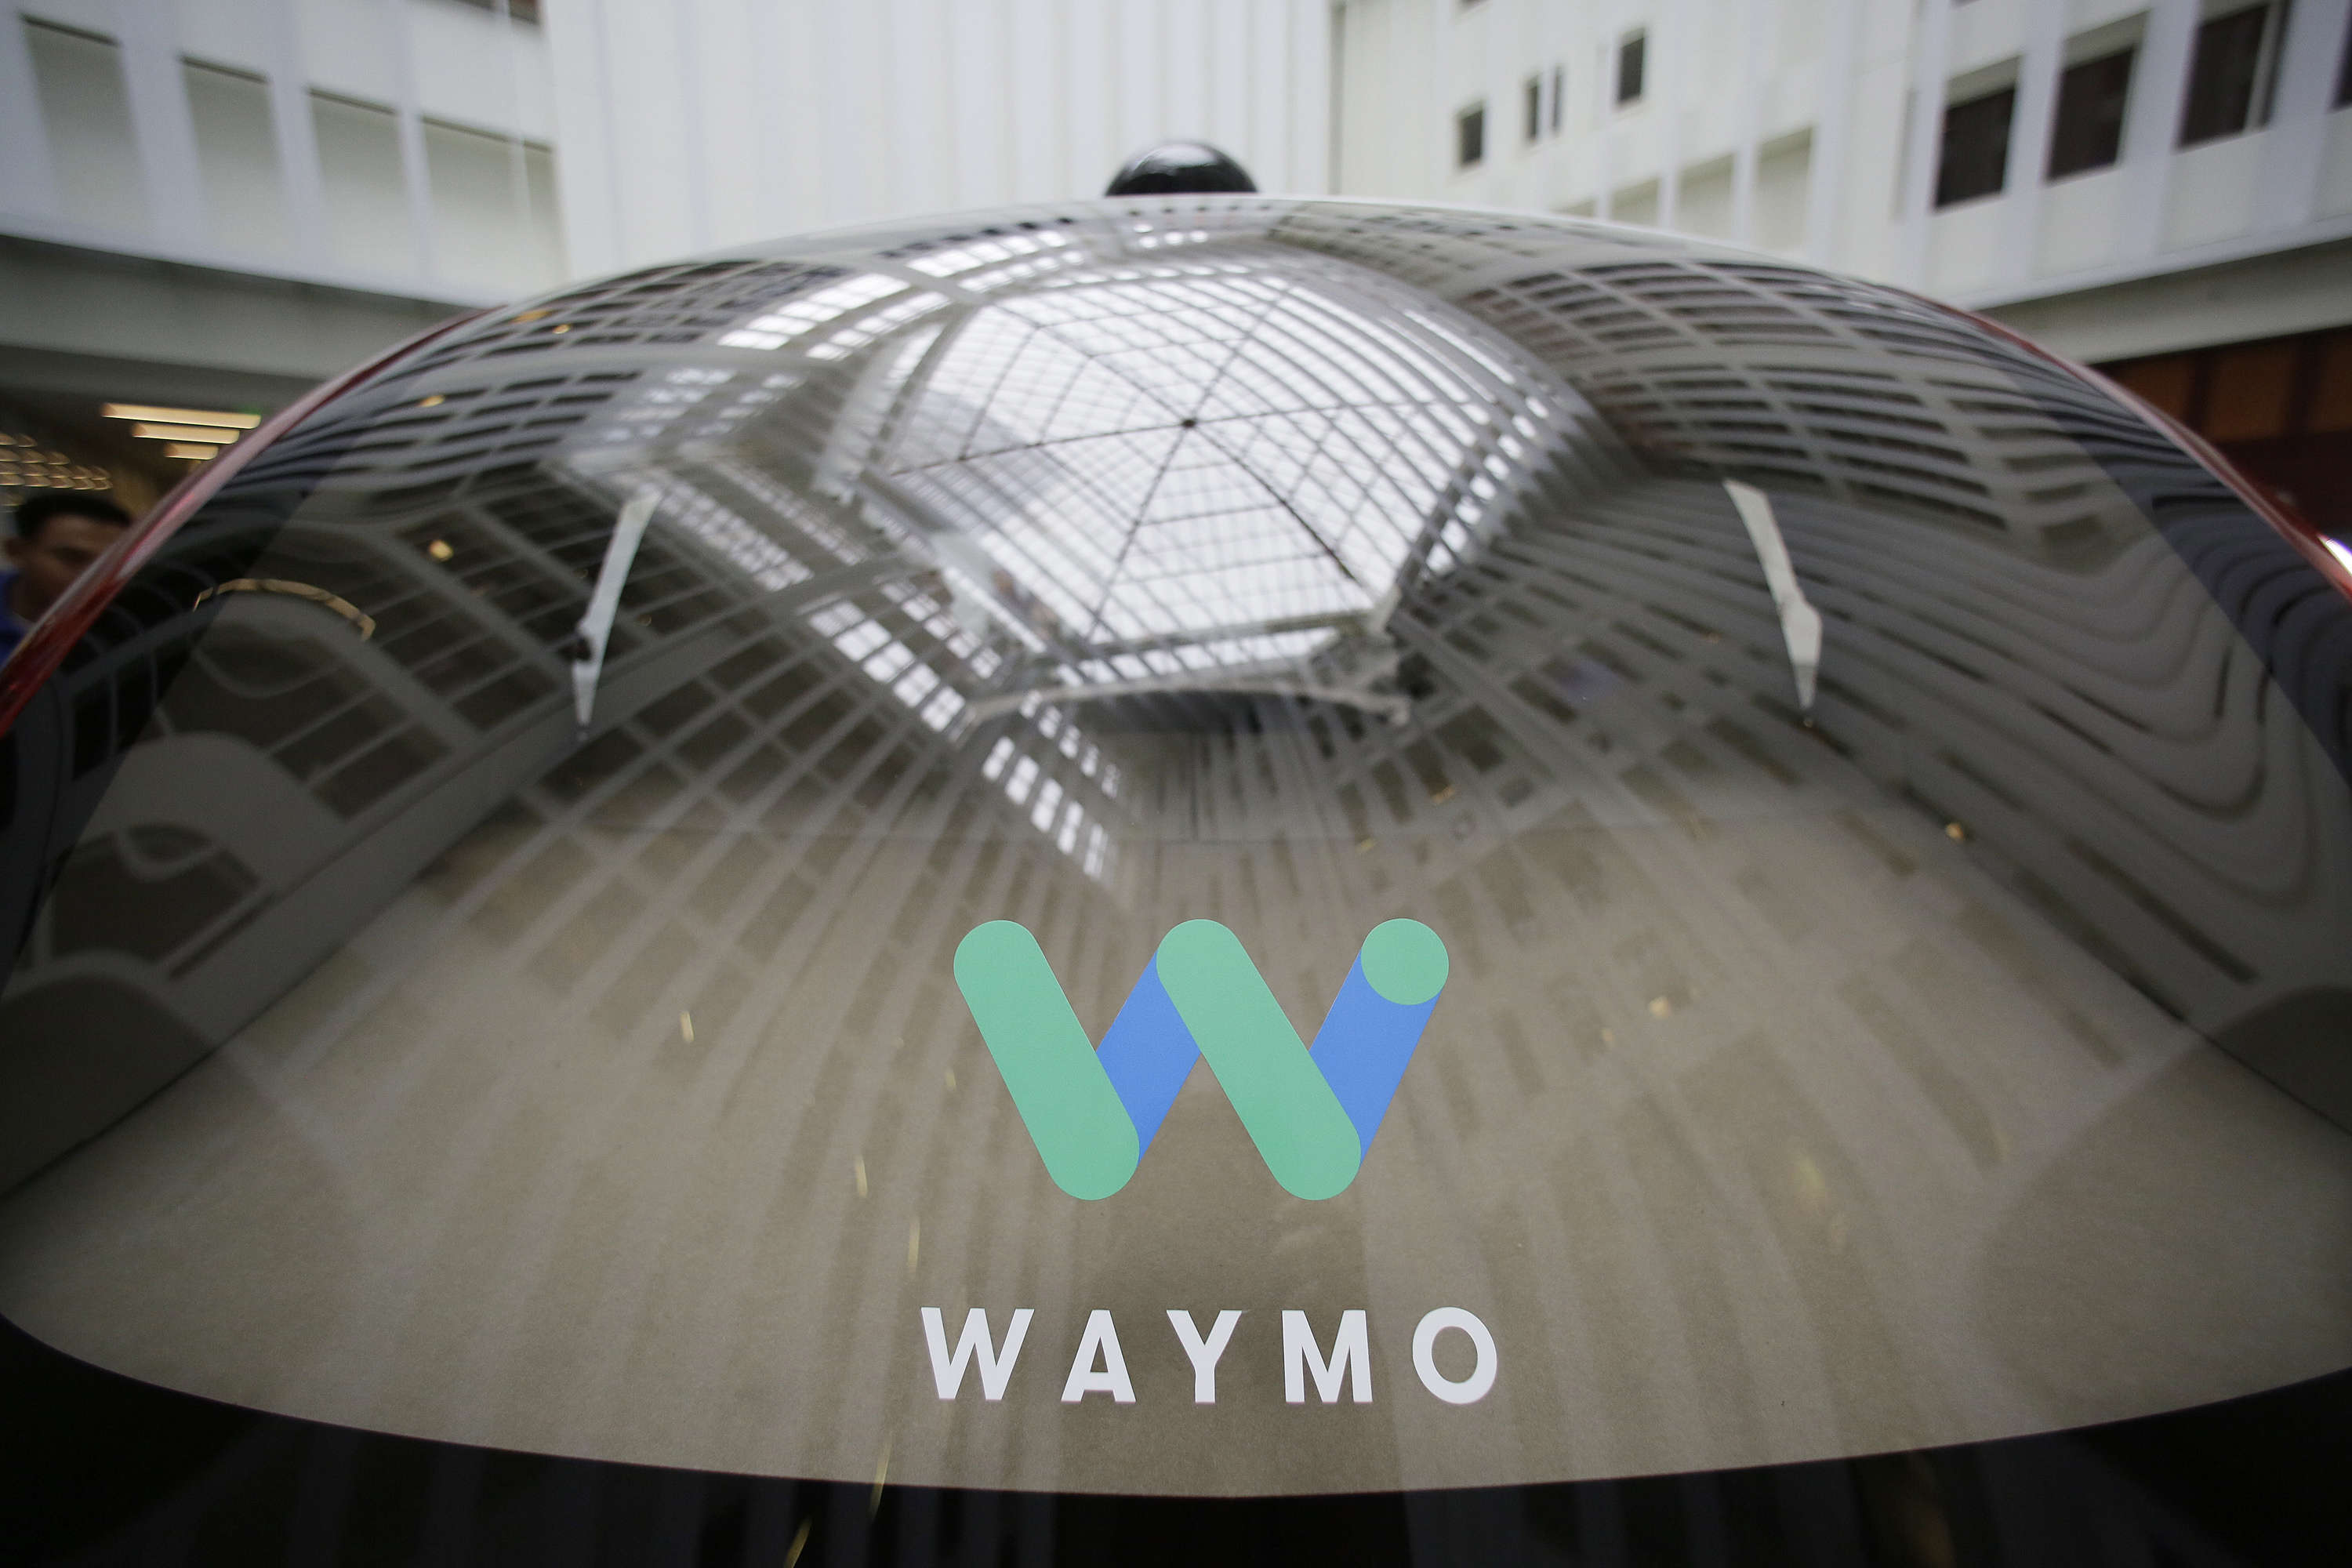 Before the pandemic, Waymo was running 1,000 to 2,000 rides per week.